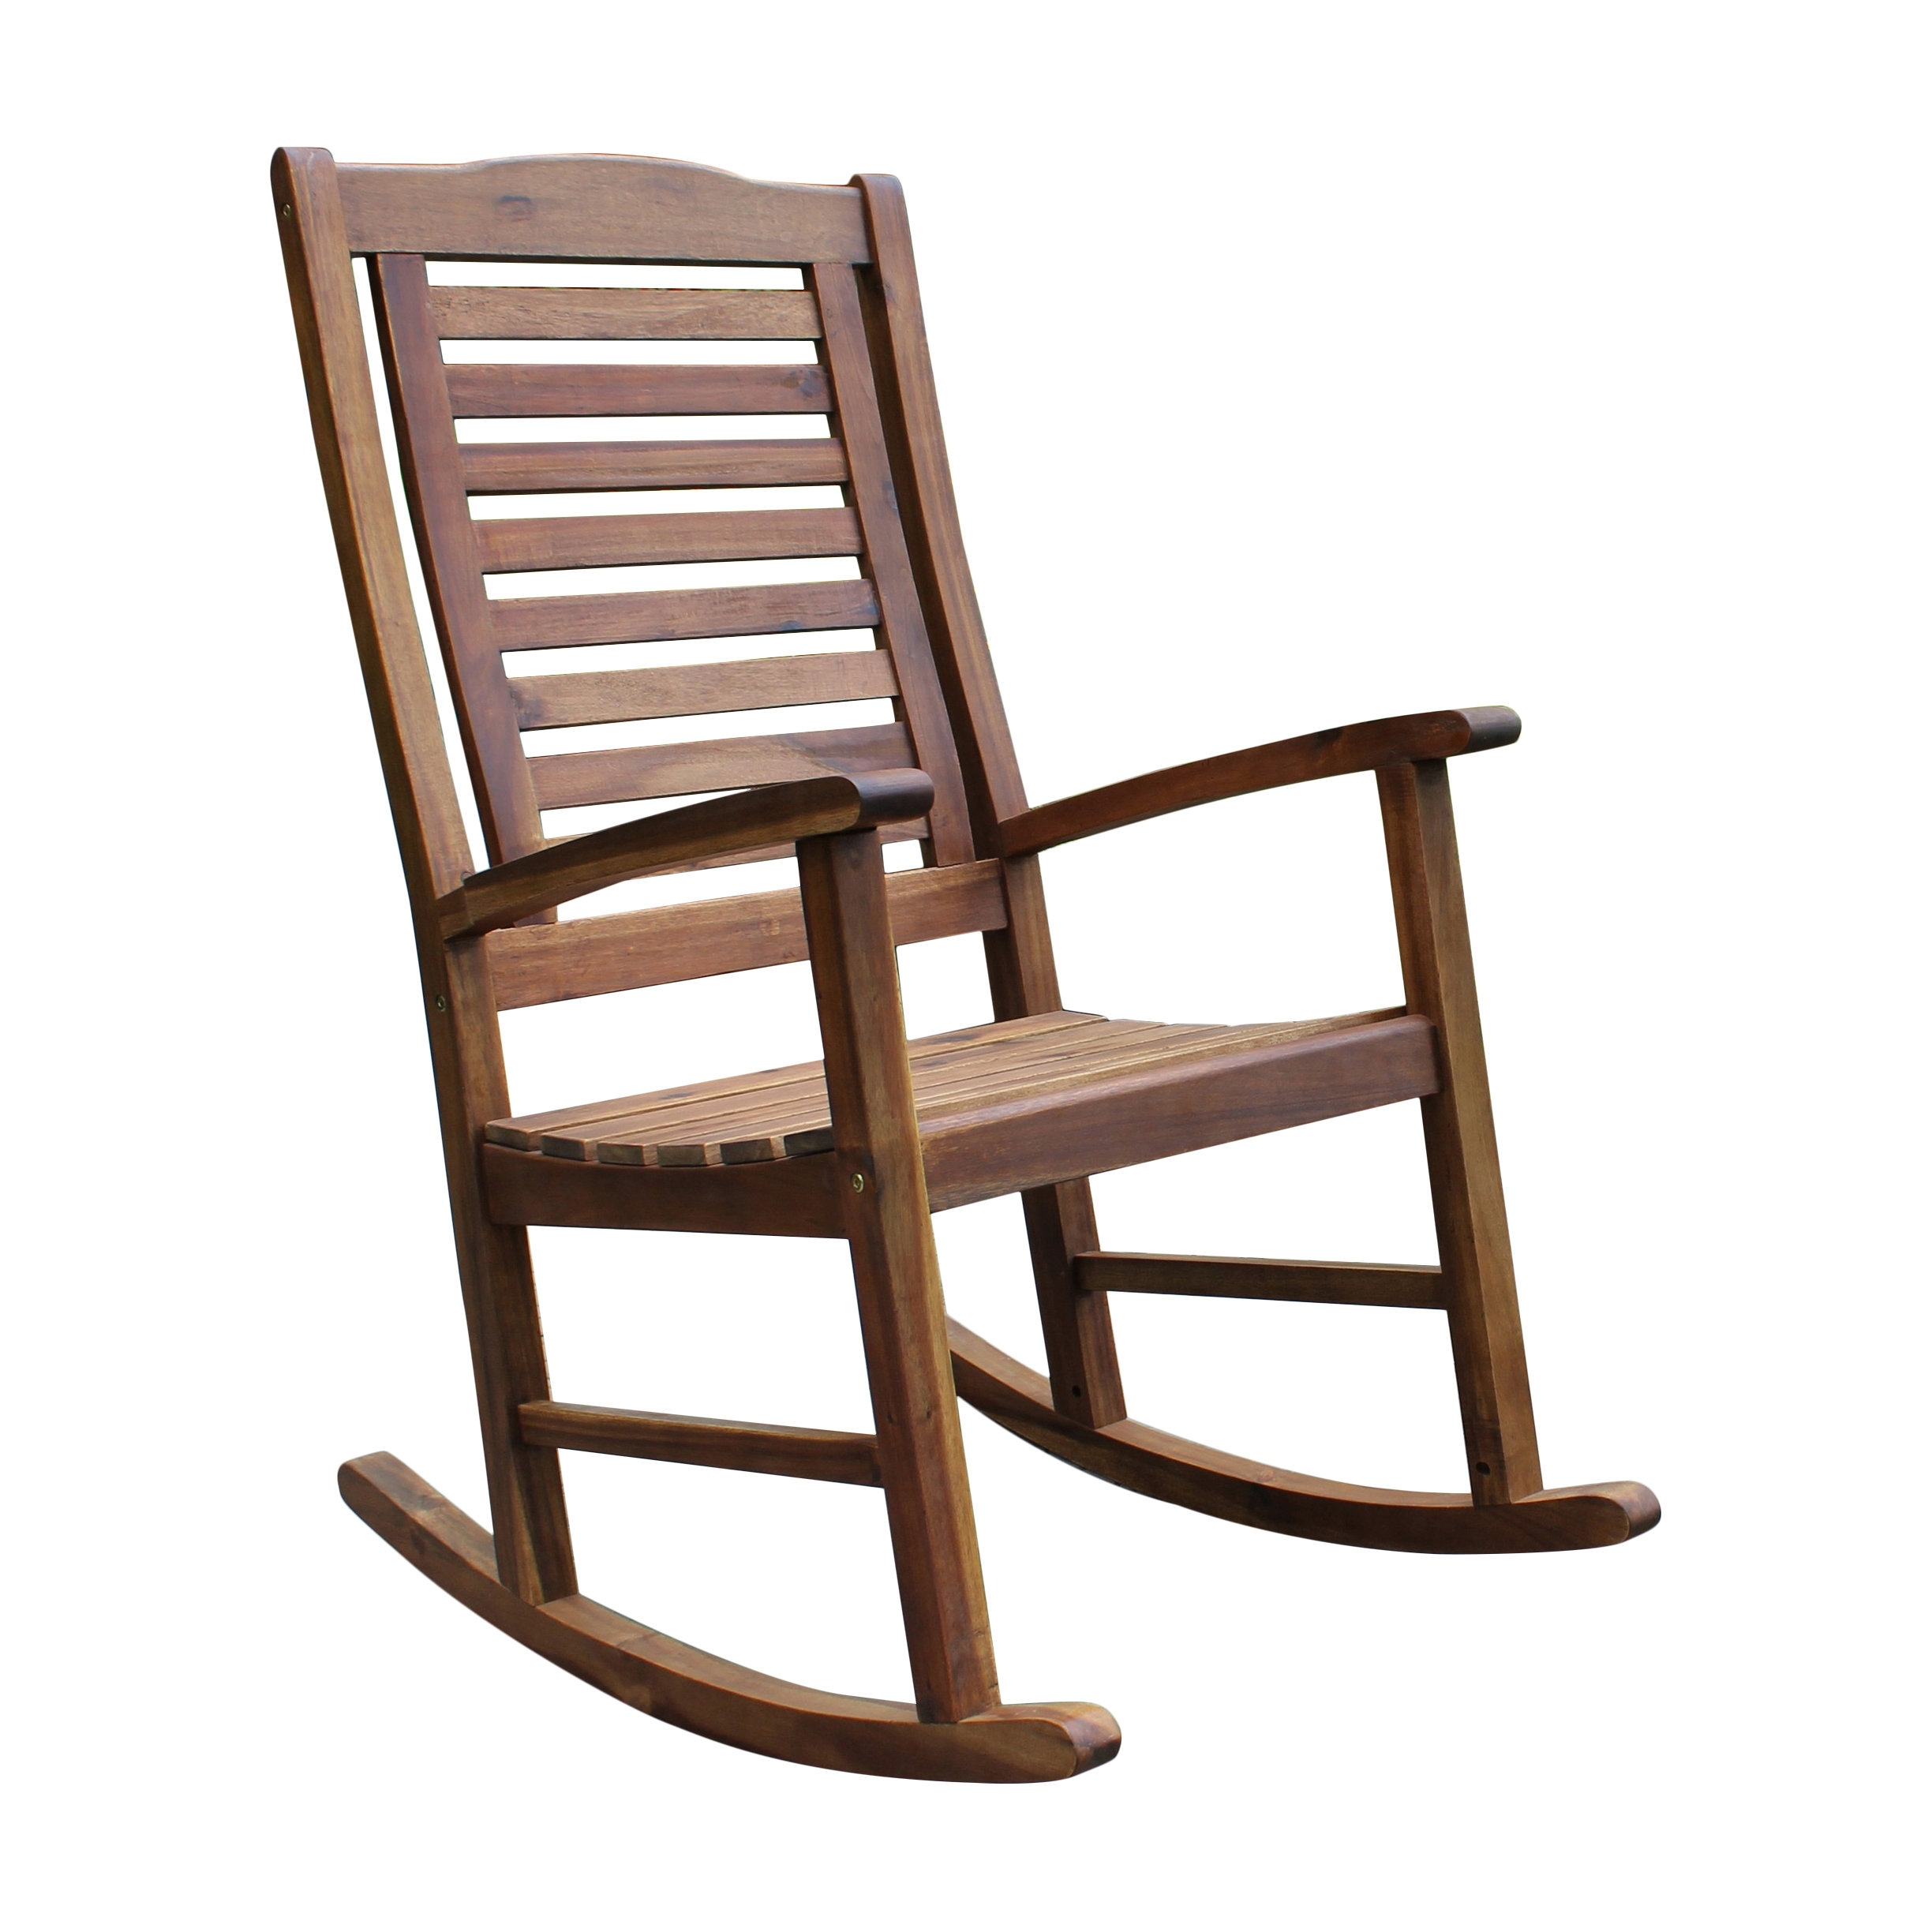 Pine Hills Outdoor Rocking Chair & Reviews | Joss & Main Intended For Outdoor Rocking Chairs (View 12 of 15)